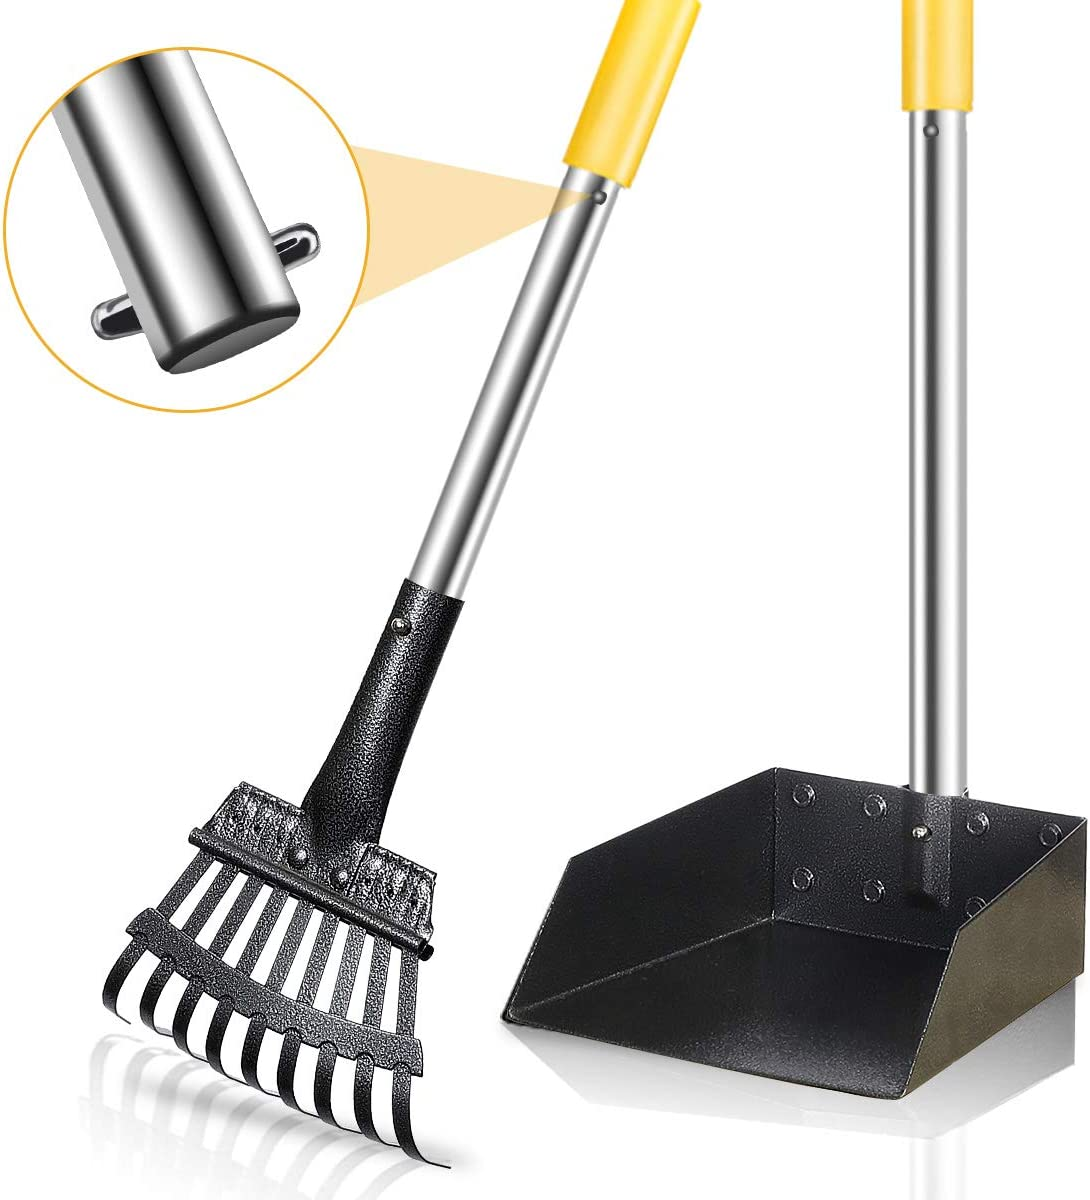 FOCUSPET Dog Pooper Scooper, Poop Scooper for Dogs Upgraded Adjustable Long Handle Metal Pet Poop Tray and Rake Set for Large & Small Dogs, Pet Waste Removal Scoop for Pets, Dirt, Gravel, Lawns, Grass